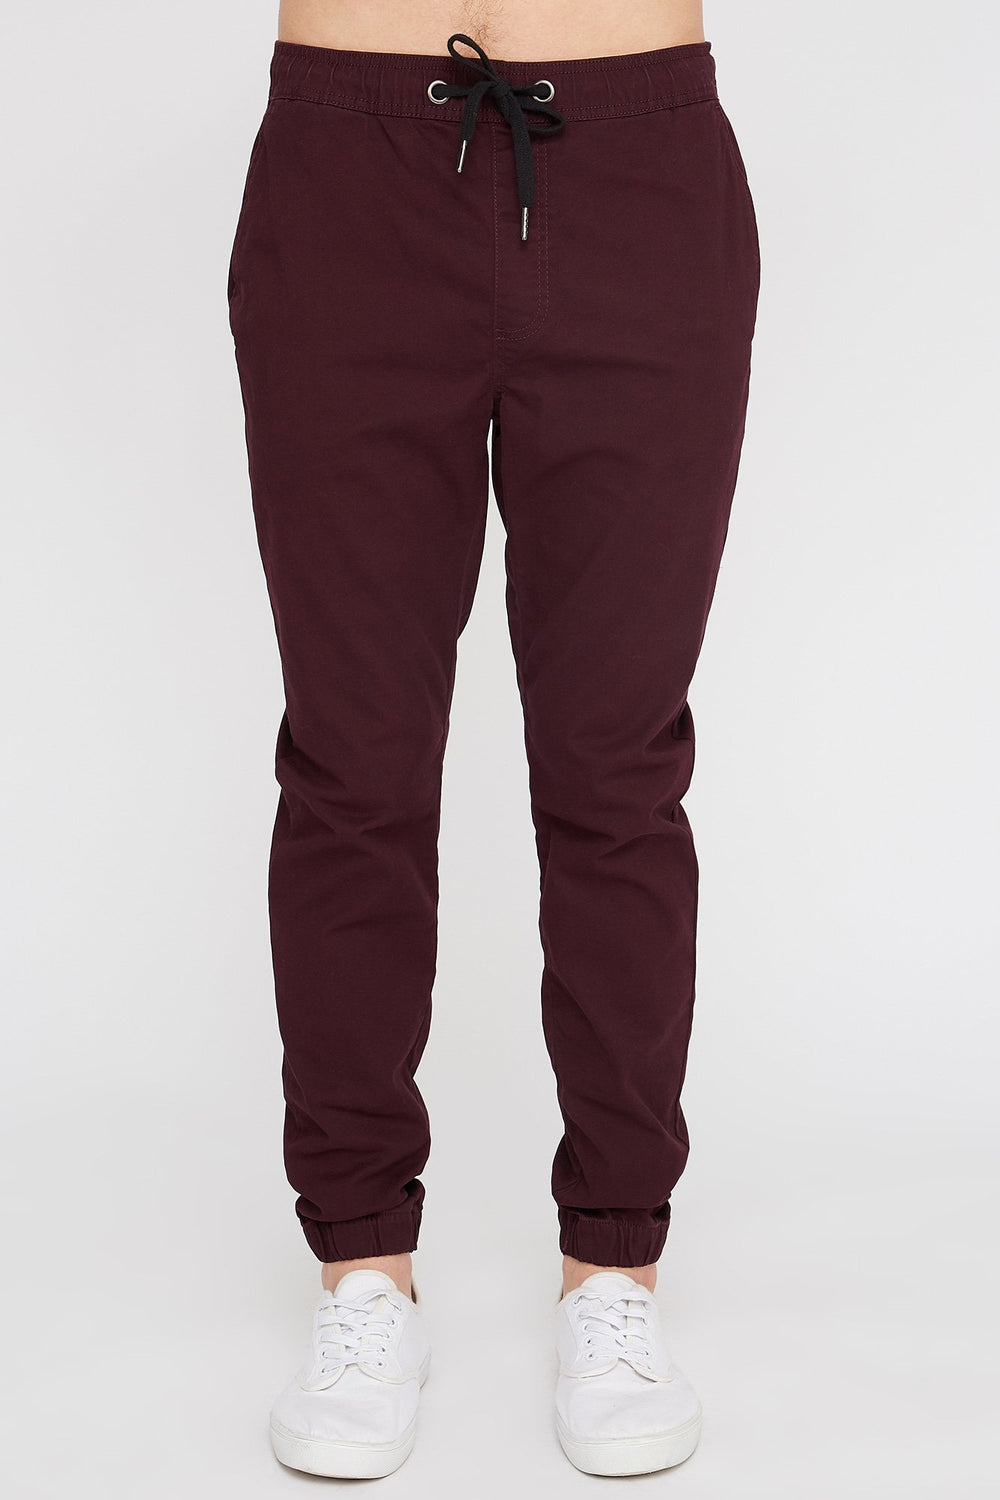 West49 Mens Solid Twill Basic Jogger Wine